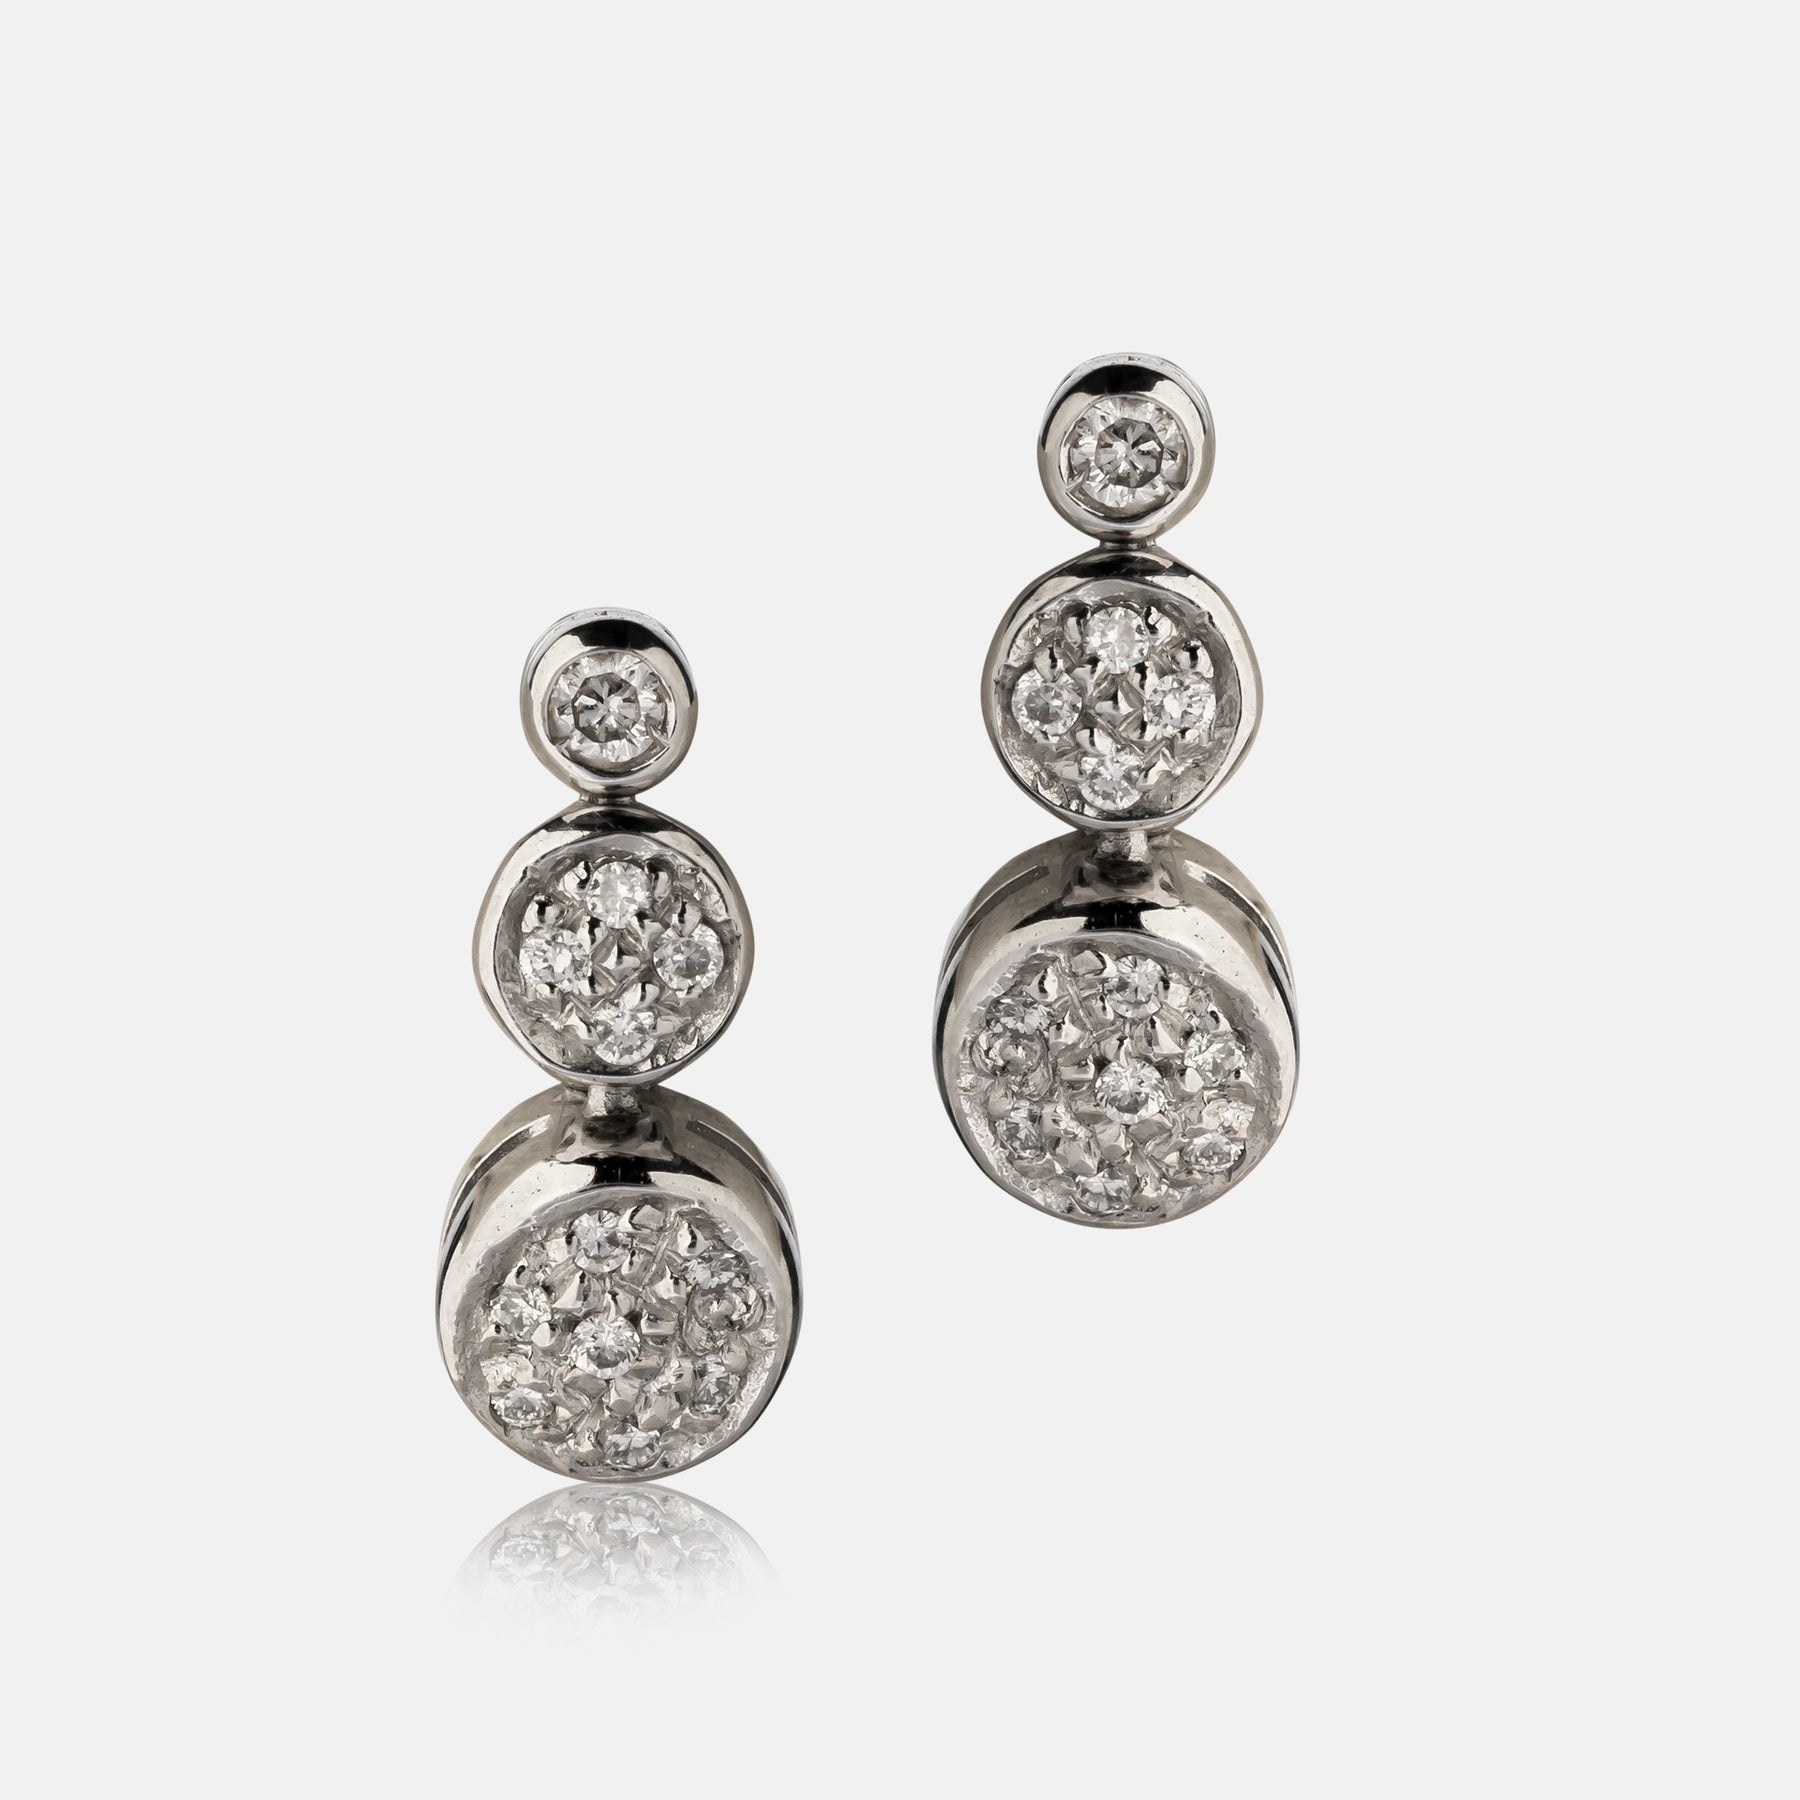 0.24ct Diamond Cluster Earrings,<br> 18ct White Gold